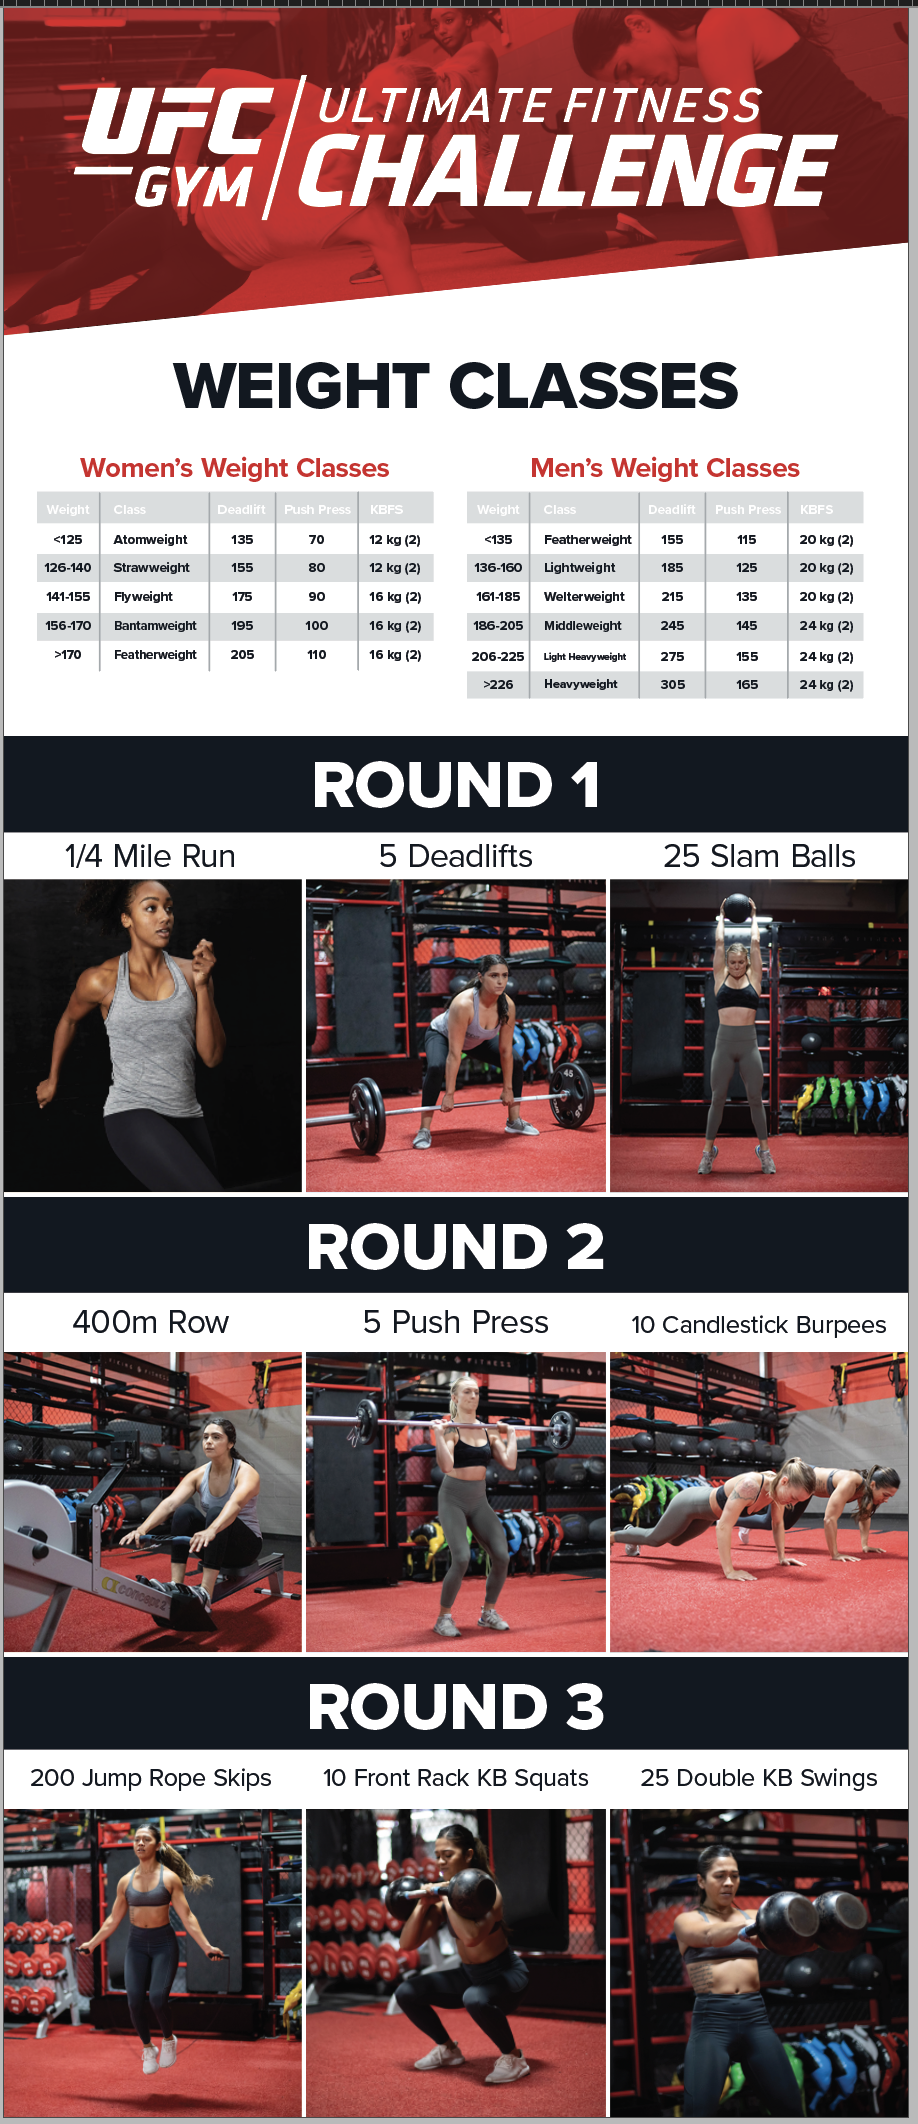 2019 Ultimate Fitness Challenge Weight Classess and Rounds